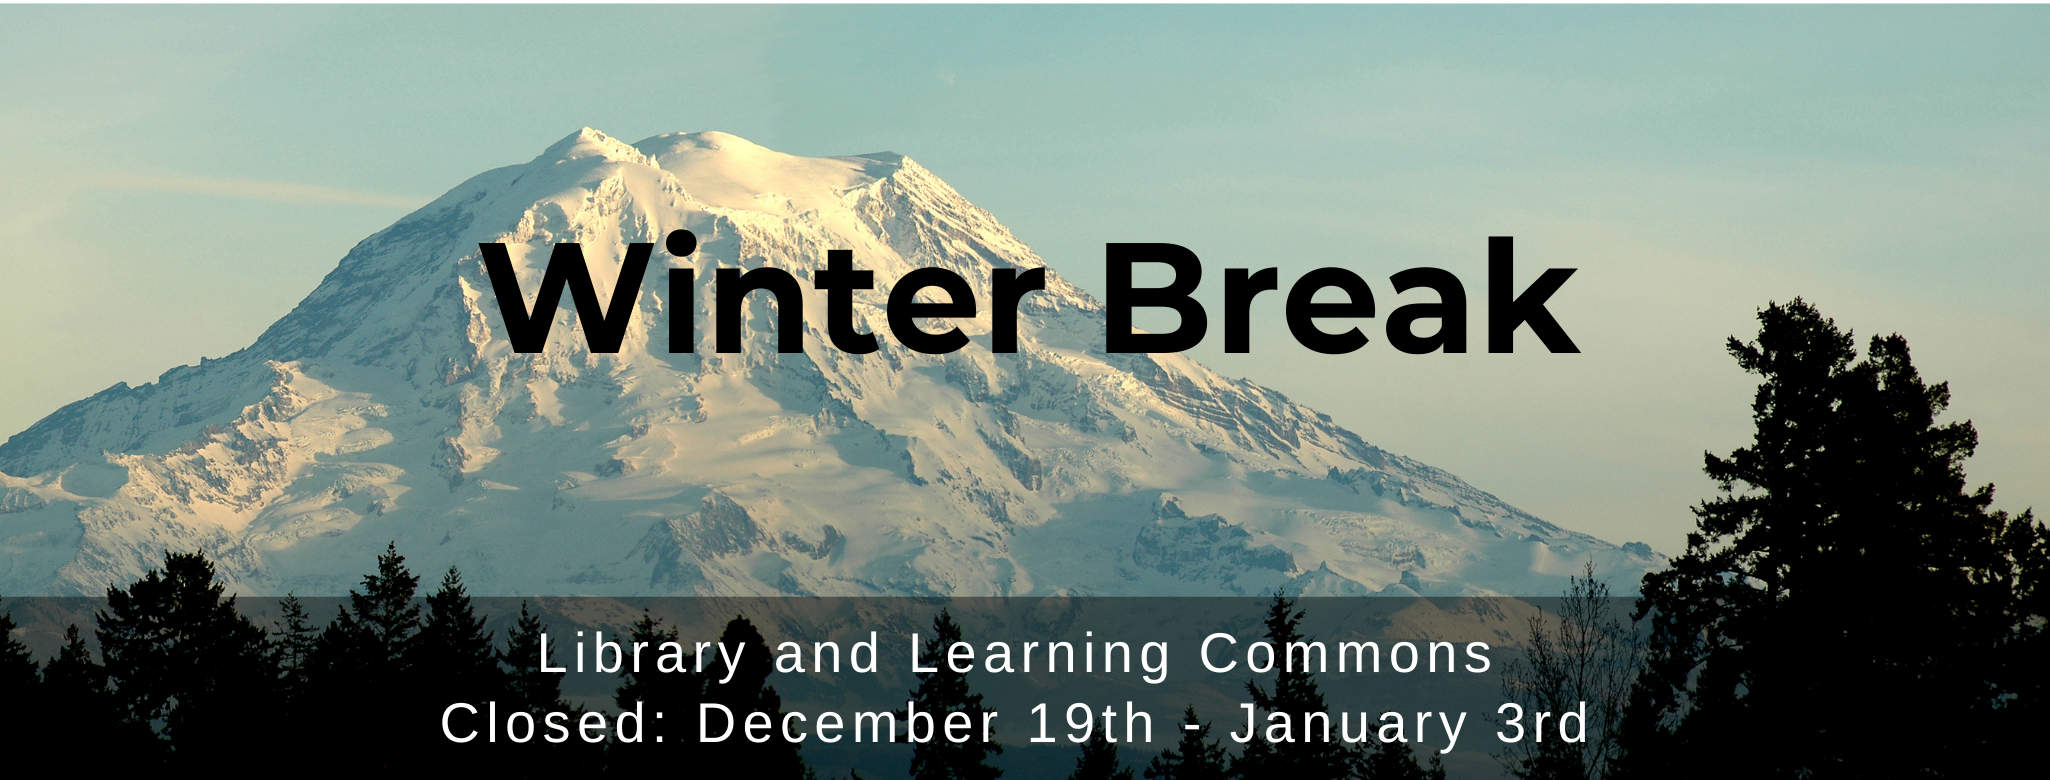 "Photograph of Mt. Ranier with superimposed text: ""Winter Break Library and Learning Commons Closed: December 19th - January 3rd"""